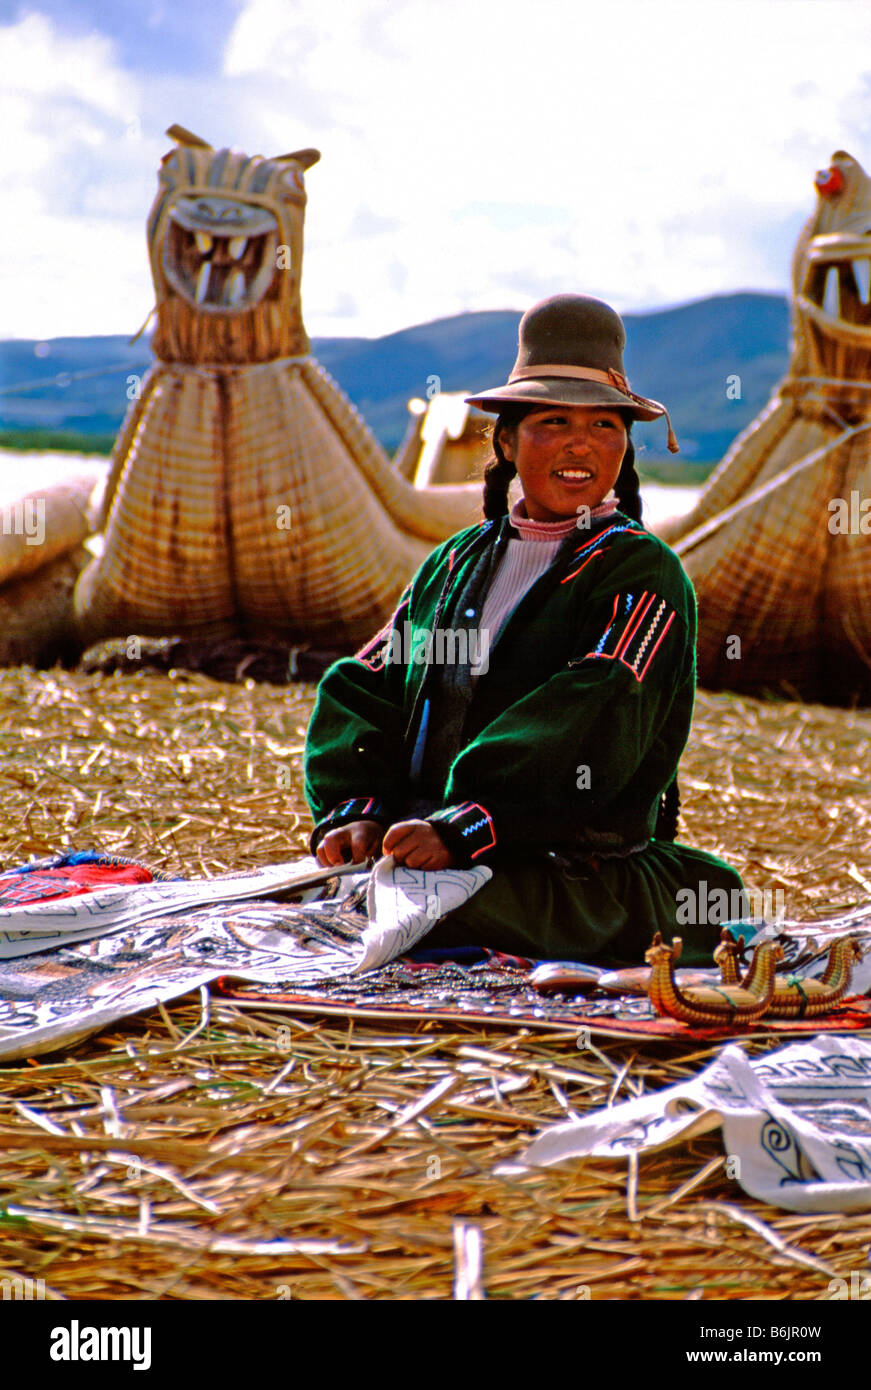 Uro indian woman in traditional attire selling handmade textiles. Typical reed dragon boats in distance. - Stock Image